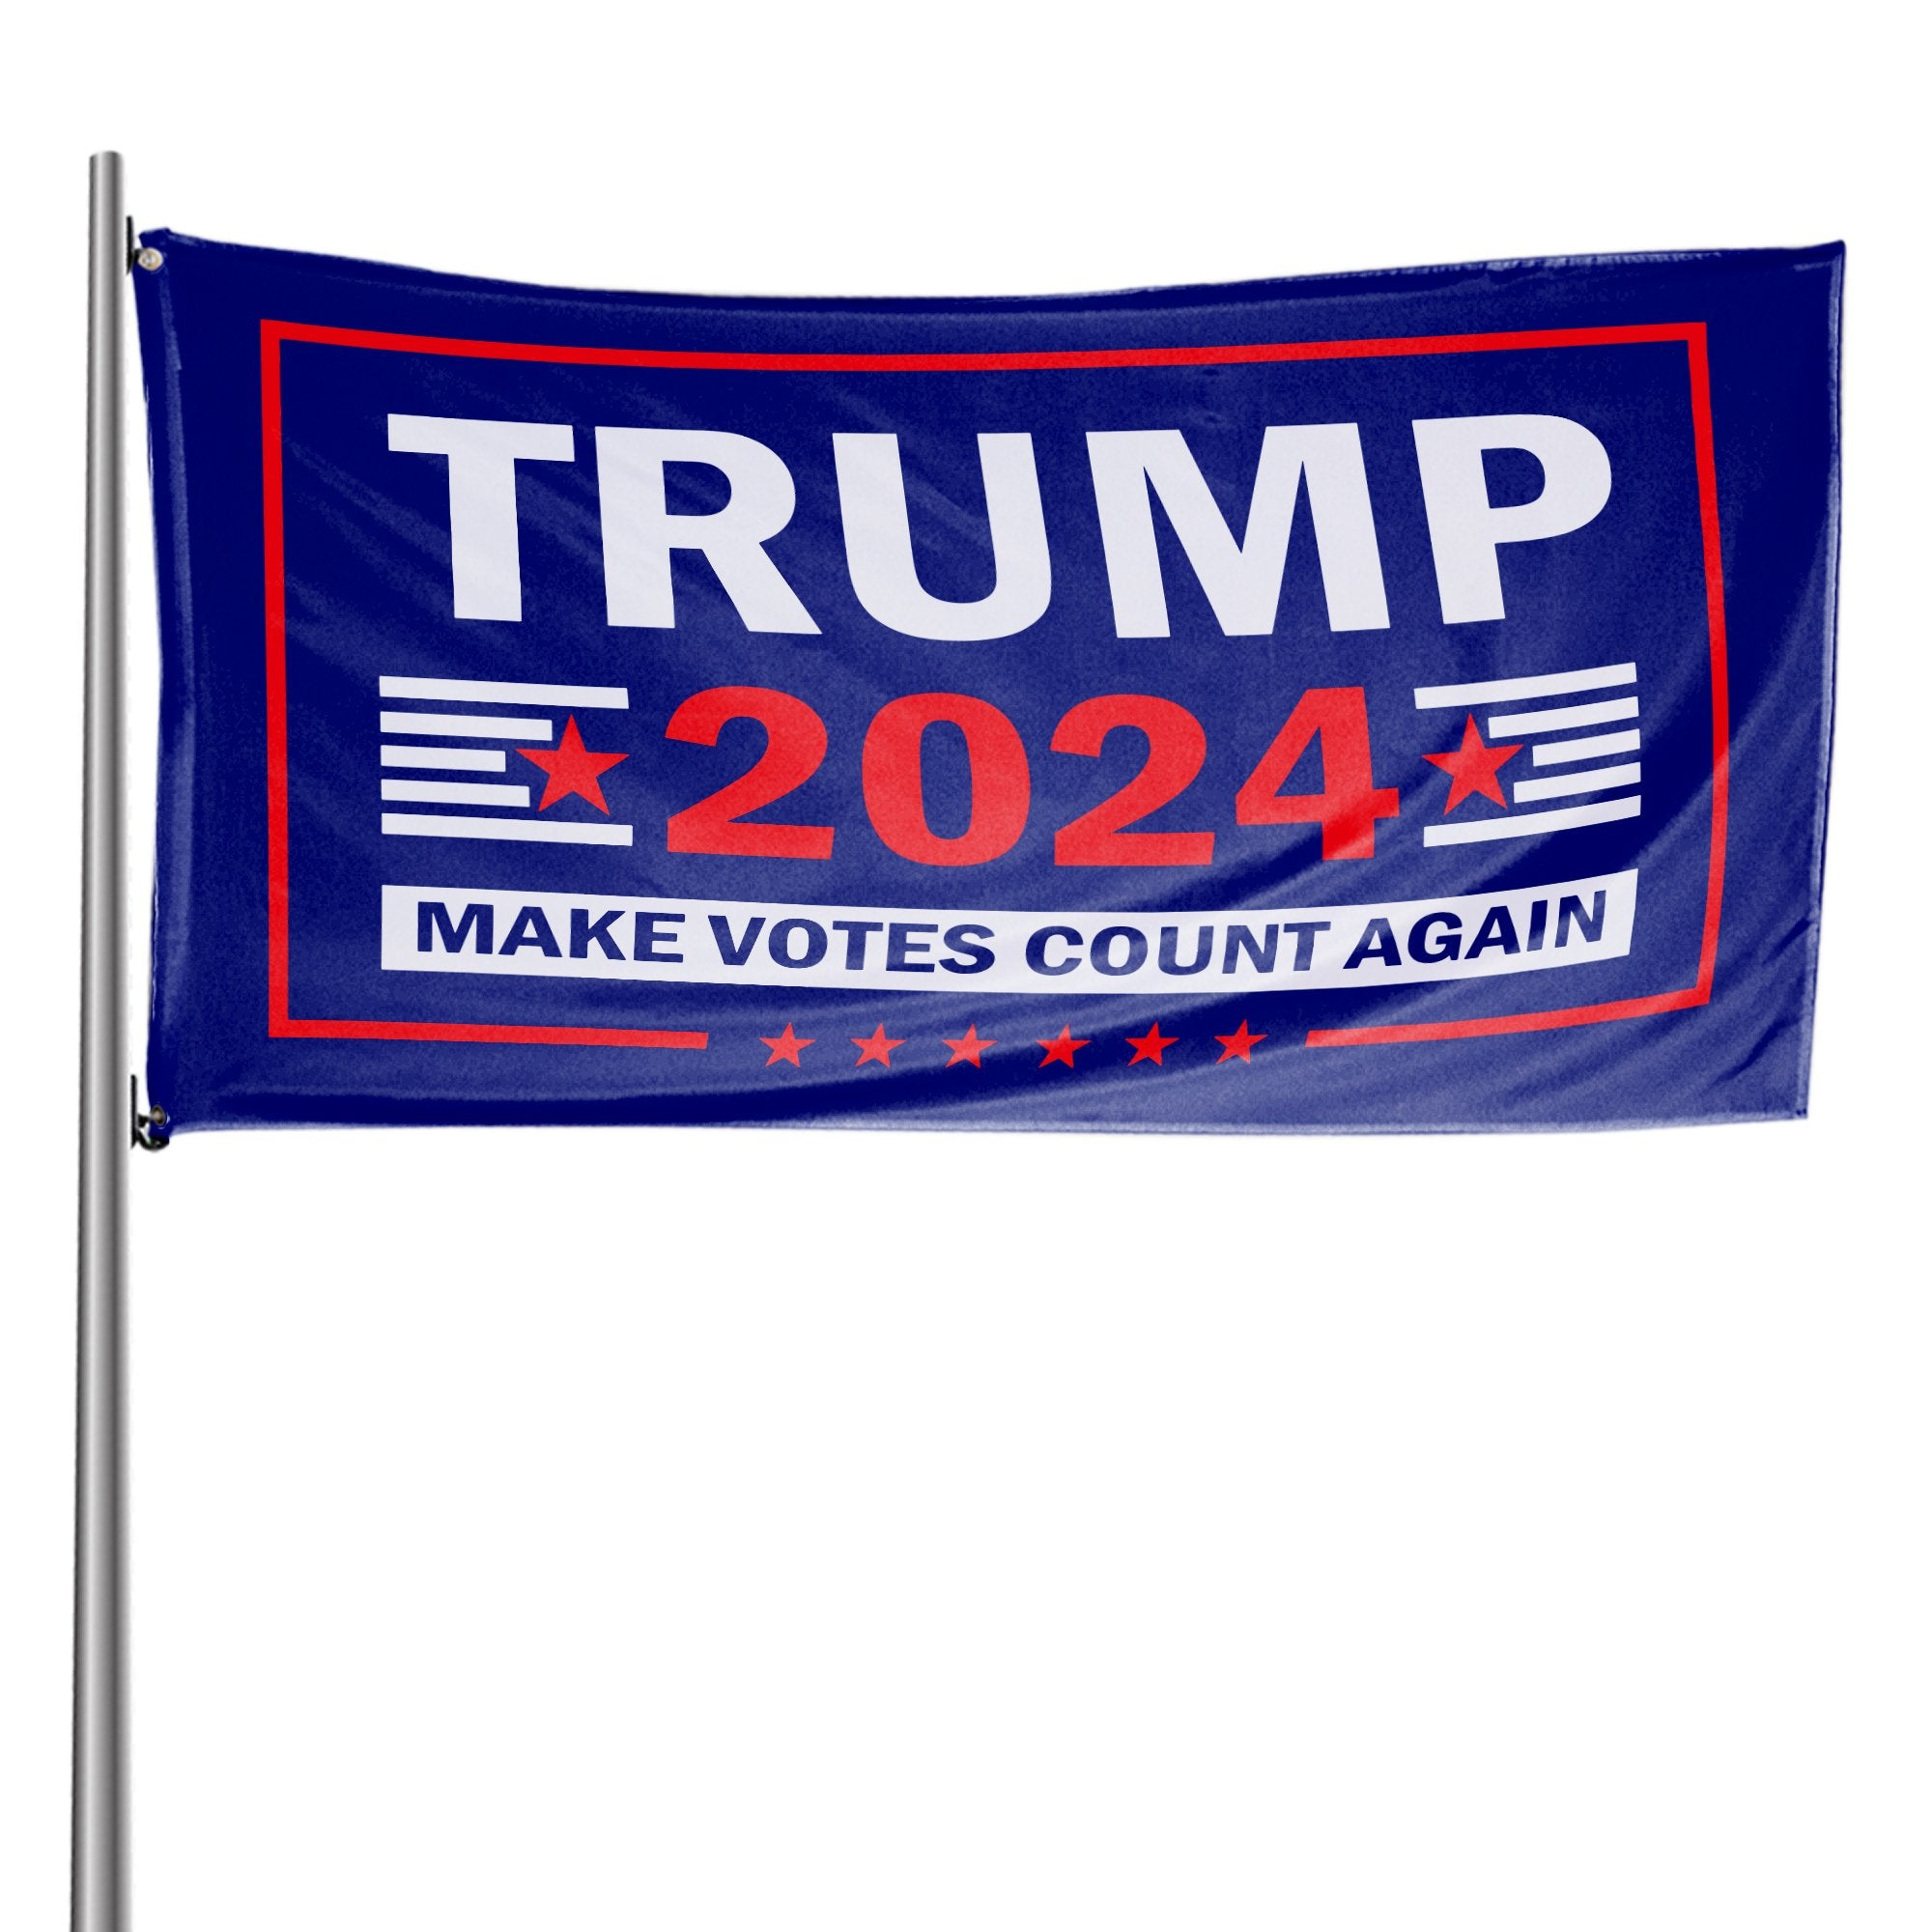 Trump 2024 Make Votes Count Again & Maryland For Trump 3 x 5 Flag Bundle